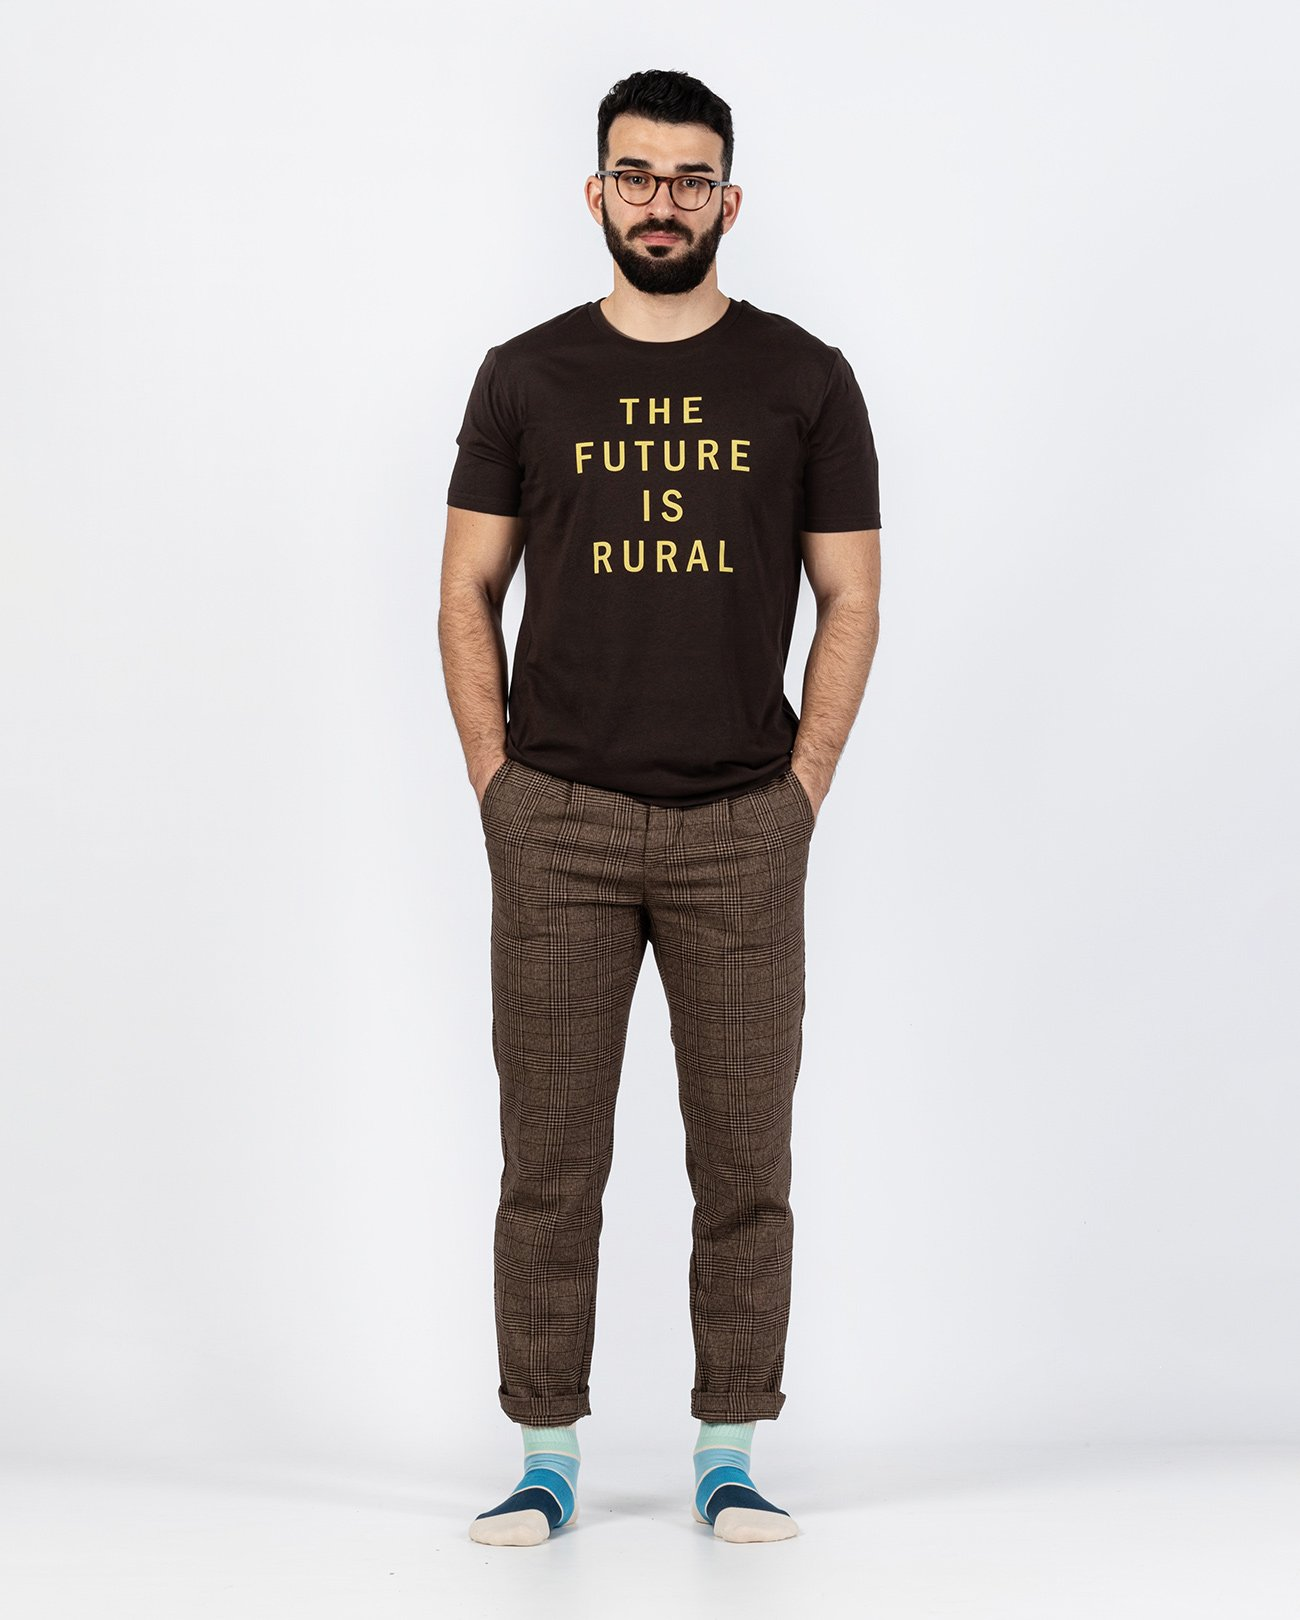 The future is rural